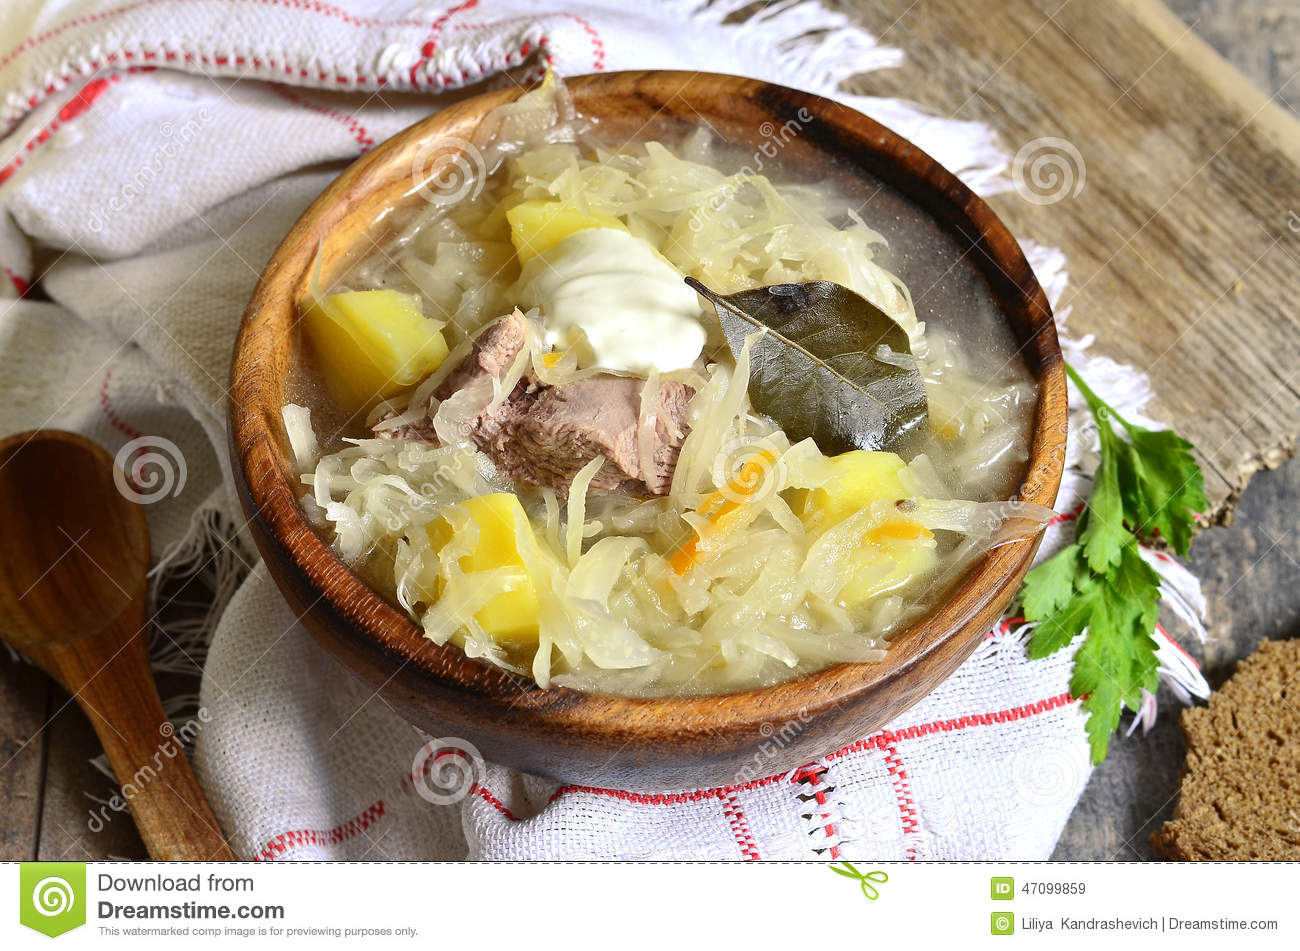 Rustic Sour Cabbage Soup With Goose In A Wooden Bowl. Stock Photo ...